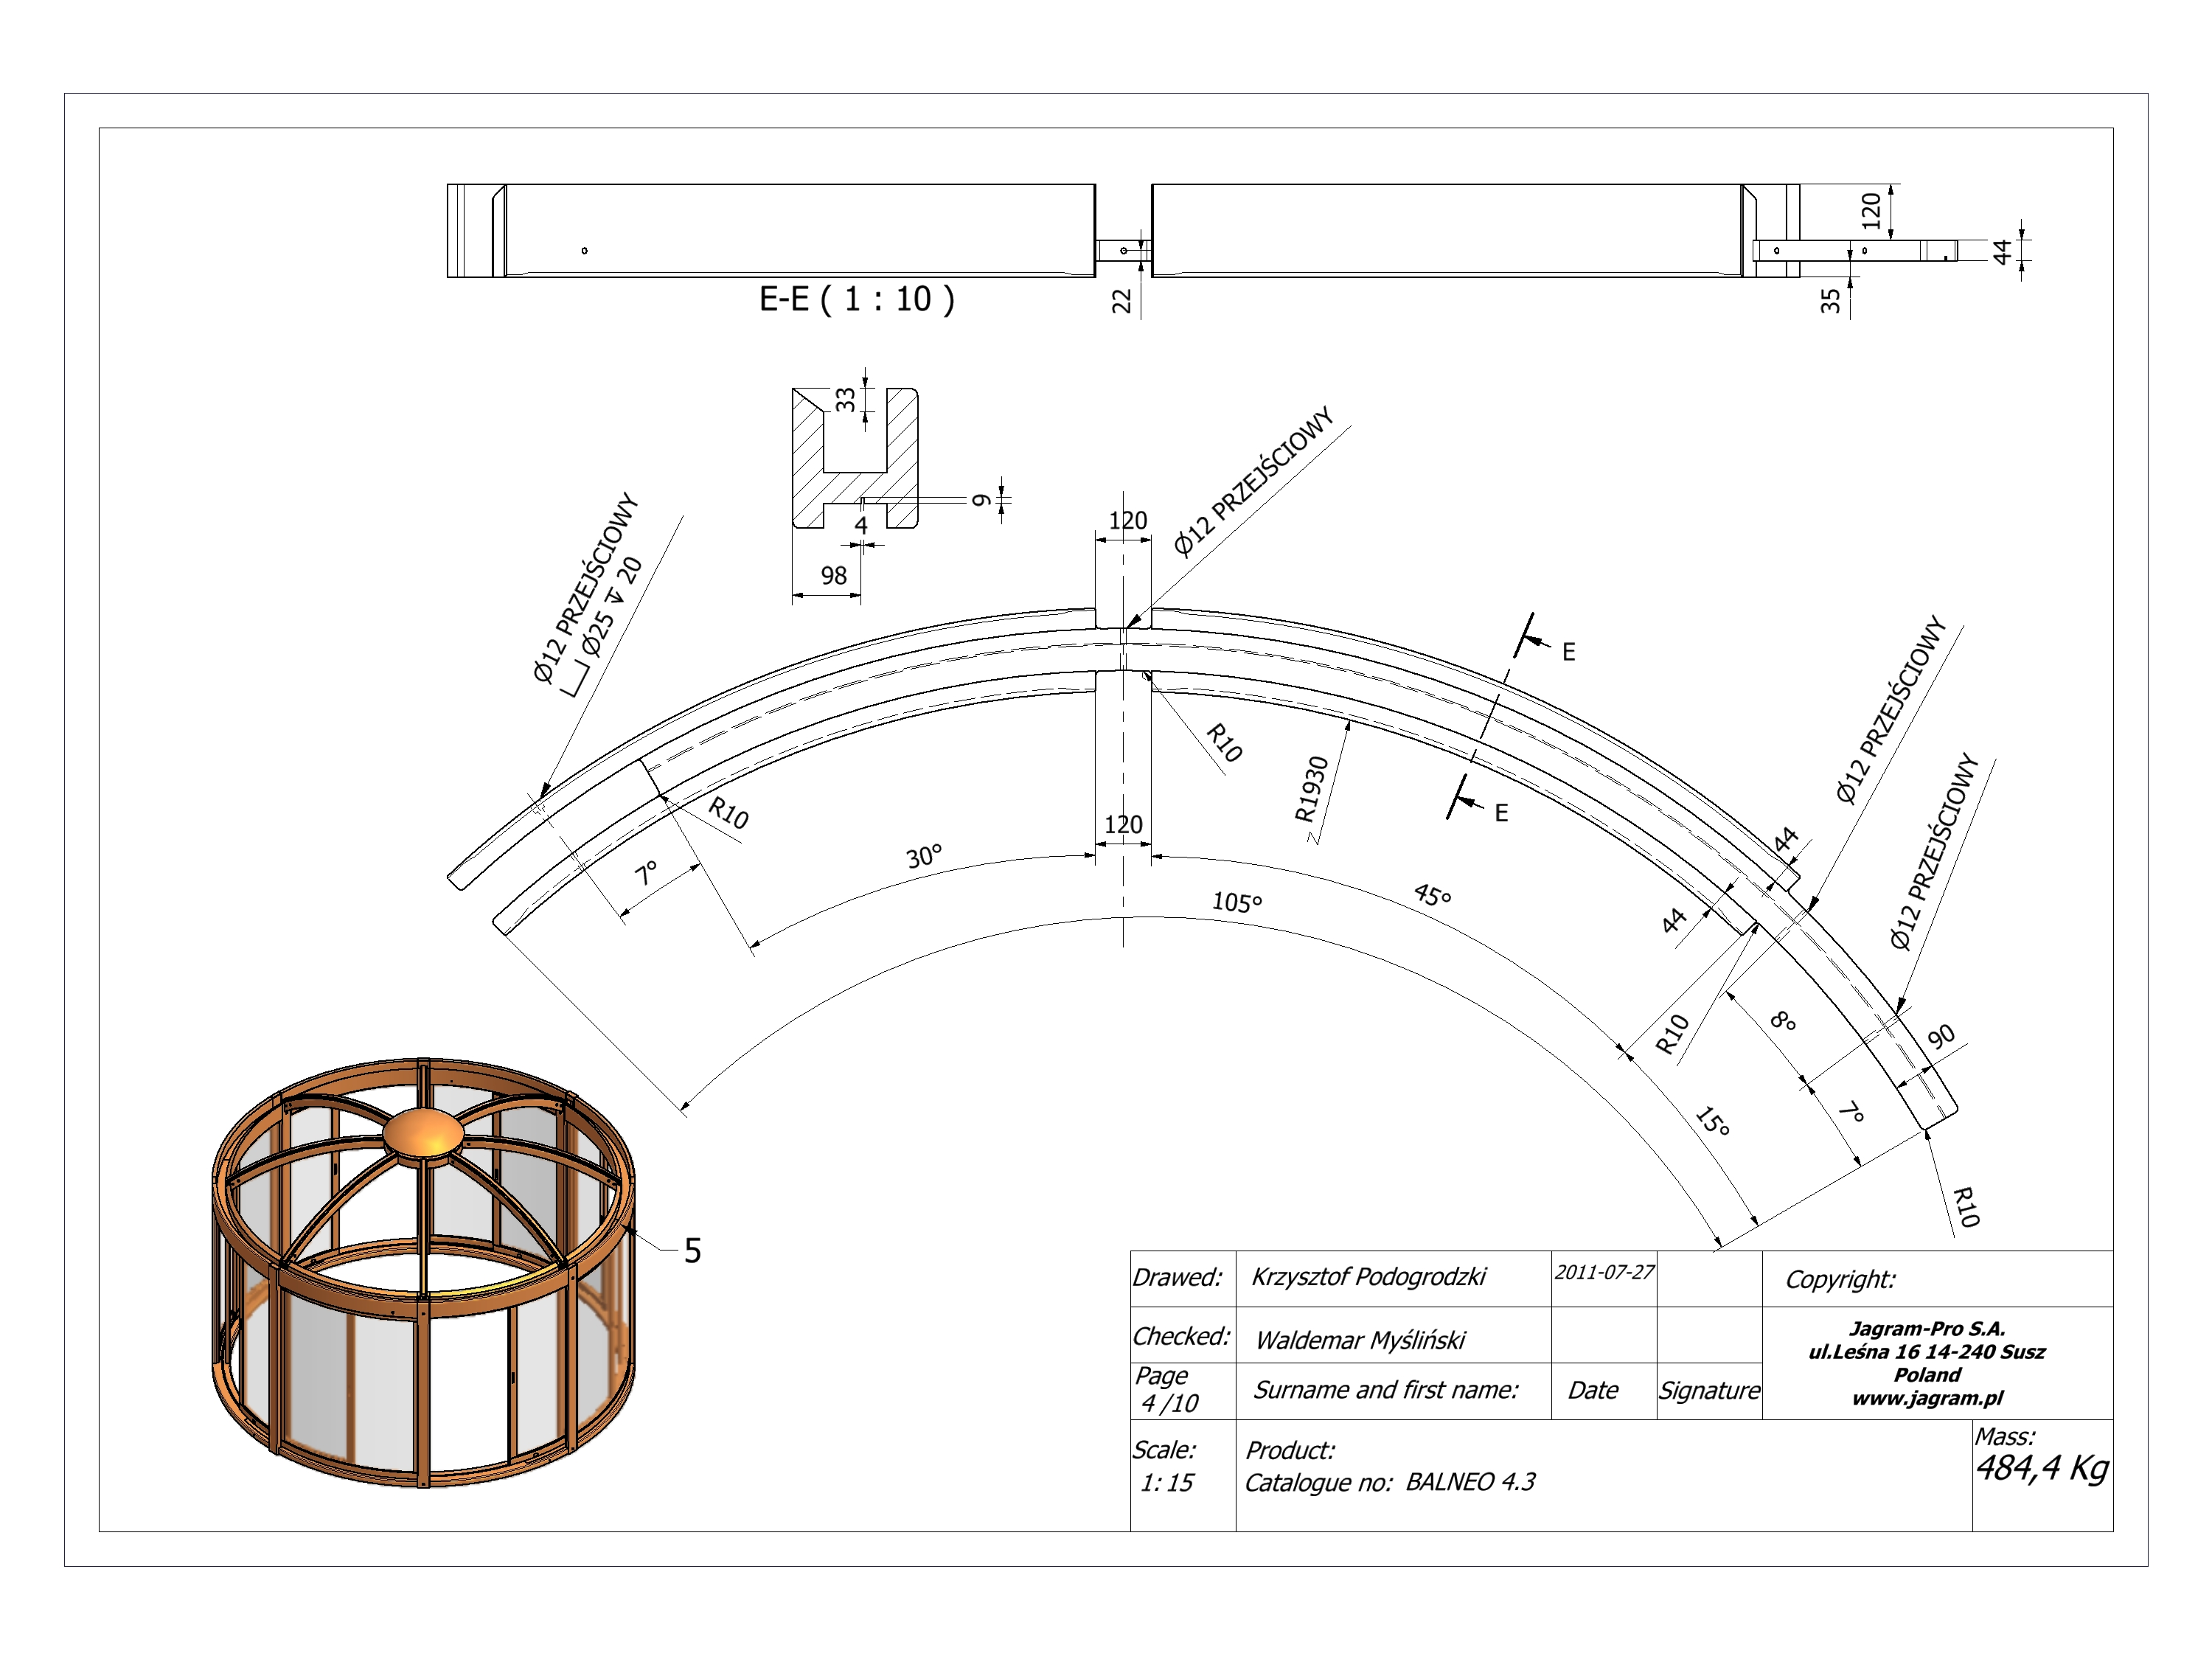 Assembly Instructions and Information